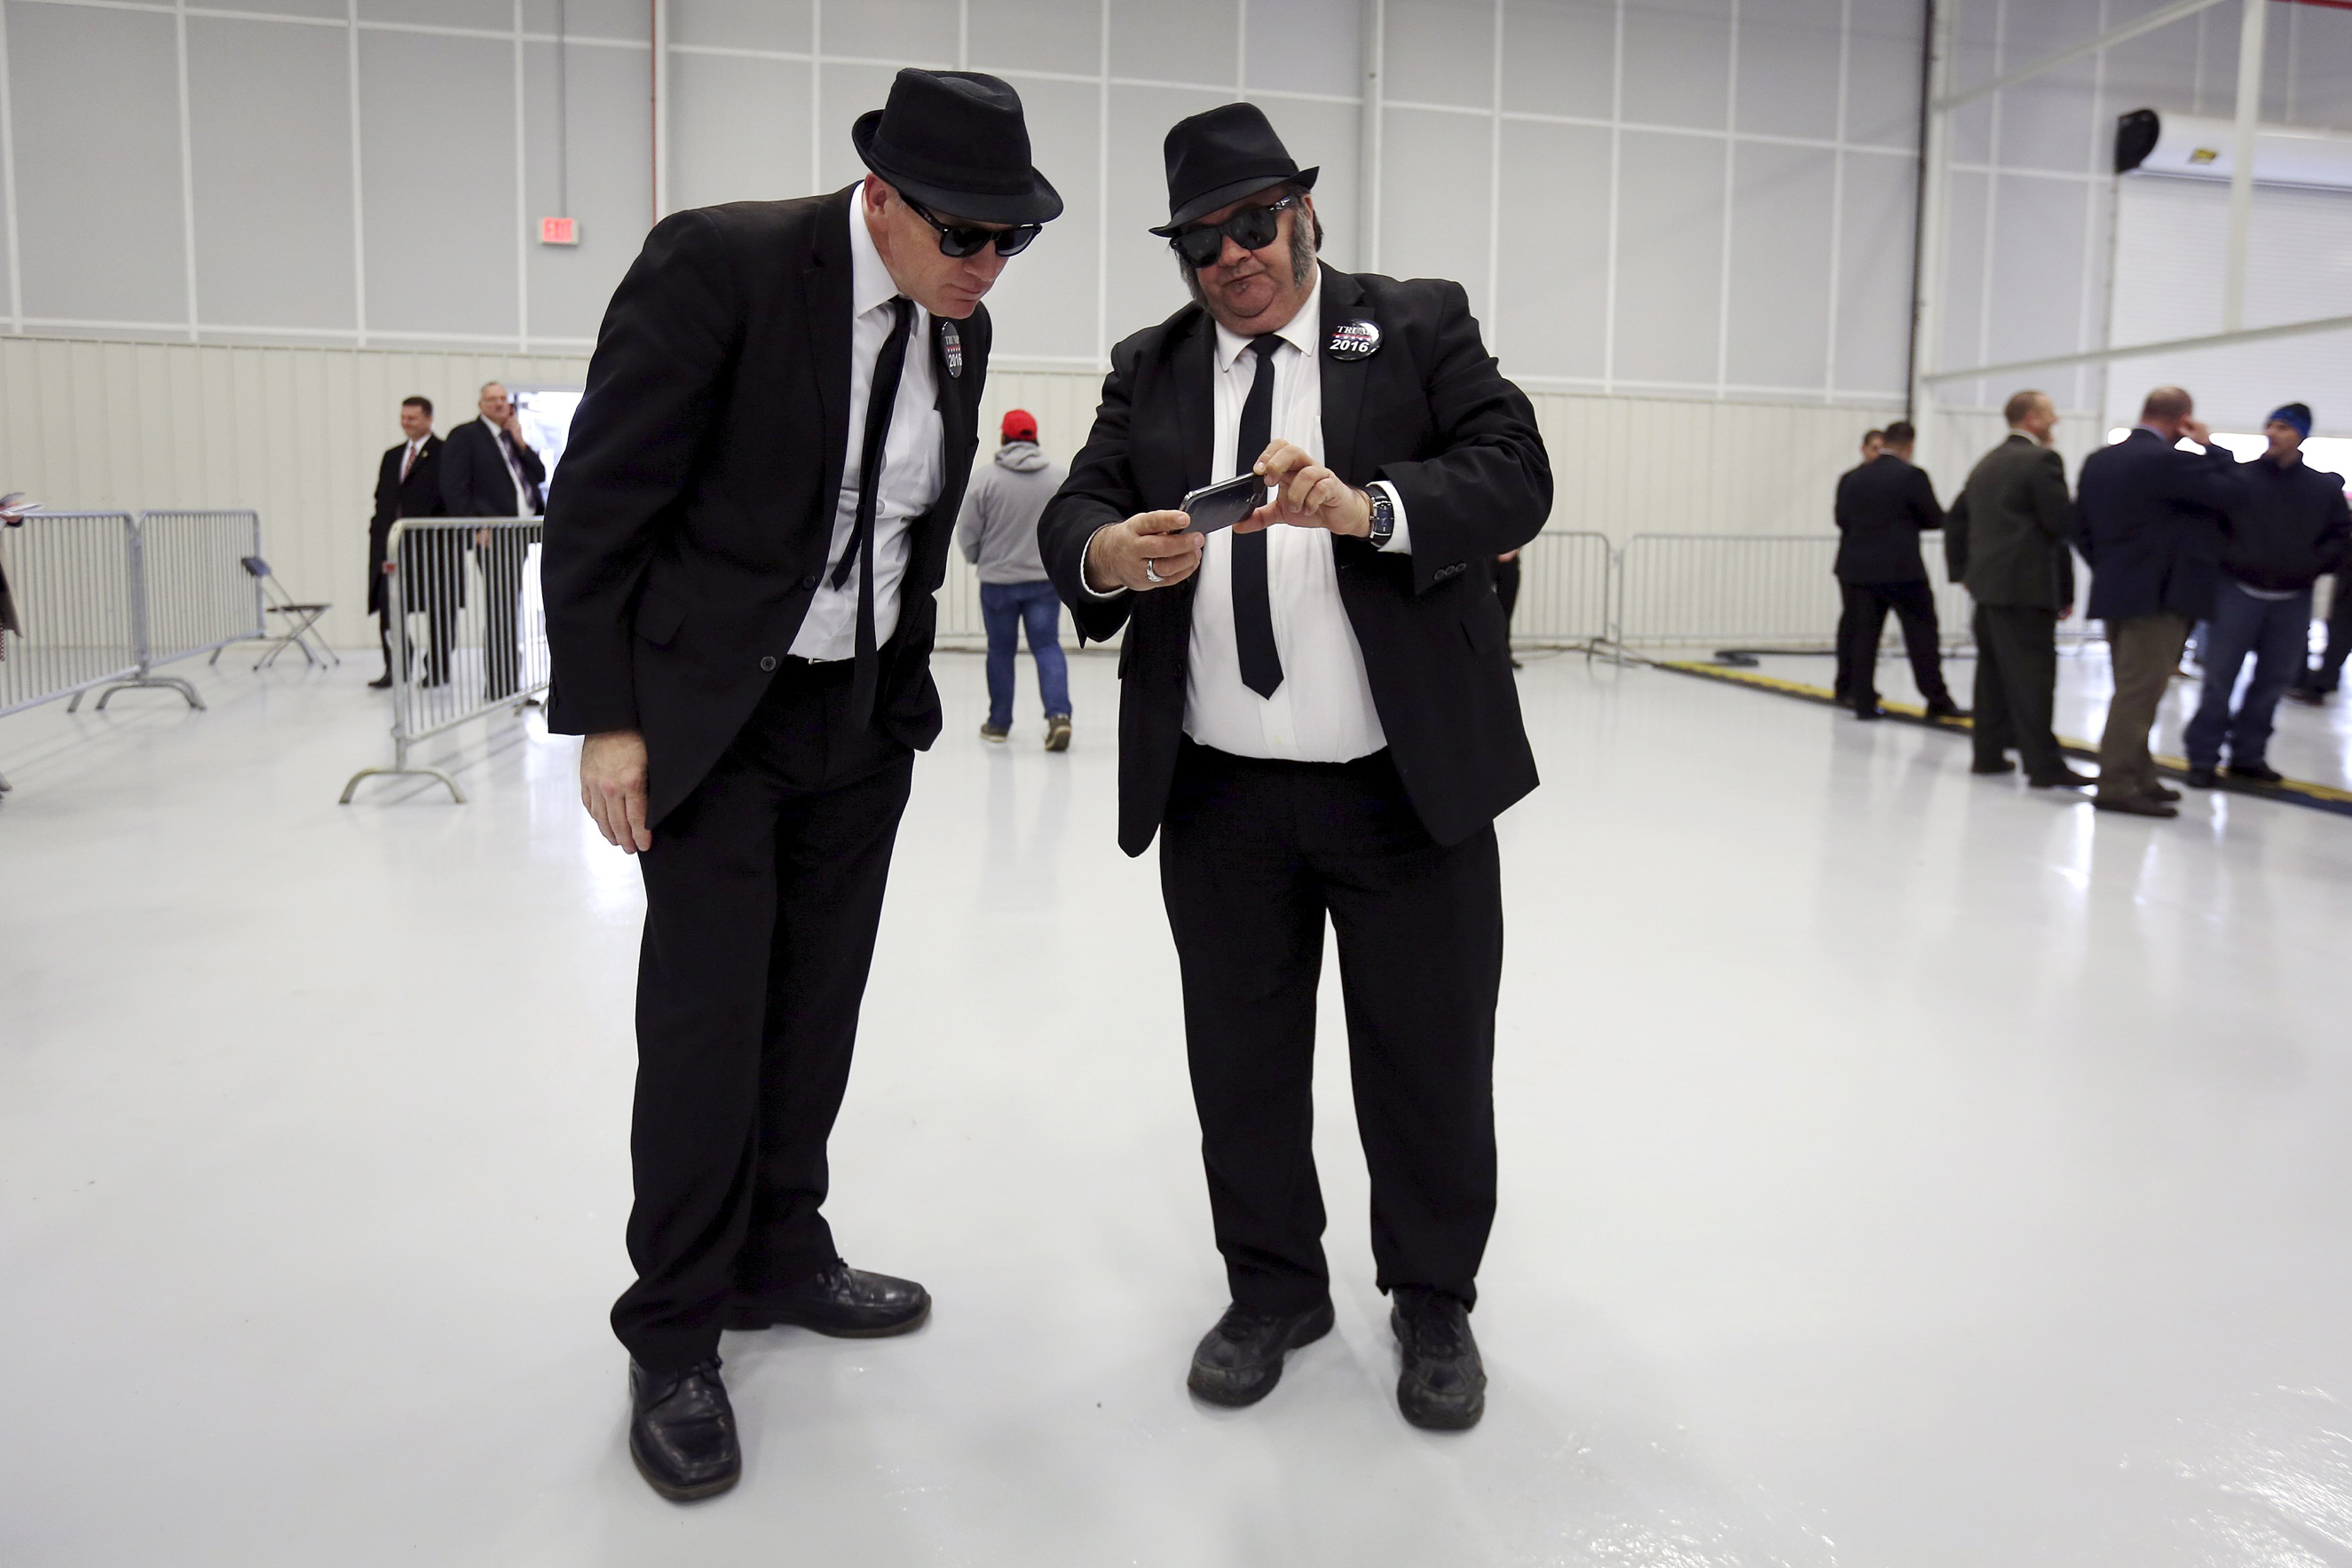 Men dressed up as Jake and Elwood Blues from the Blues Brothers movie attend a campaign event for Donald Trump in Rome, N.Y. on April 12, 2016.